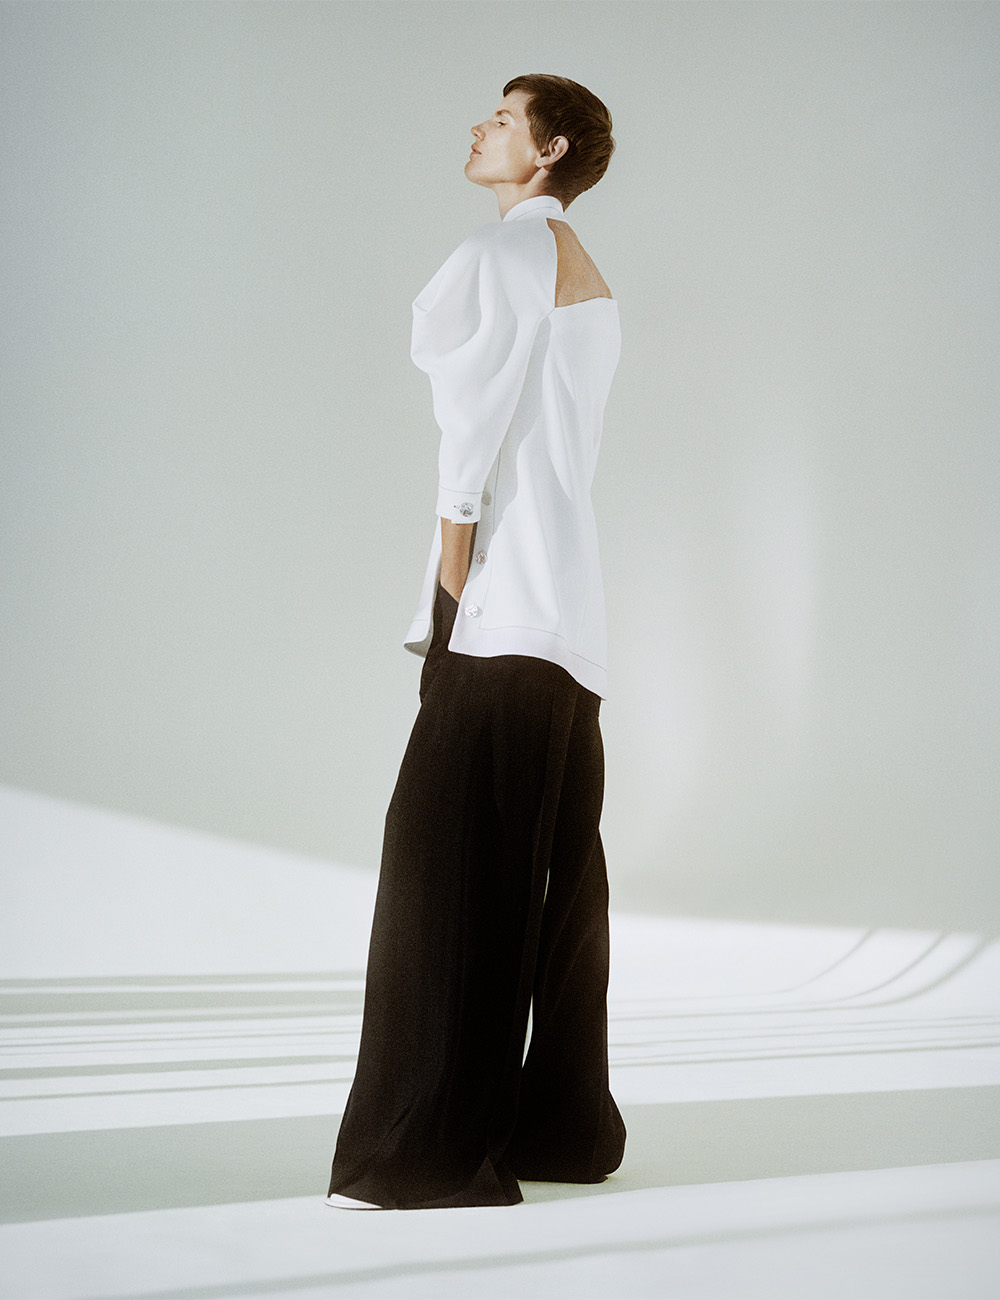 SS21 Look 22: White Top and Black Pants